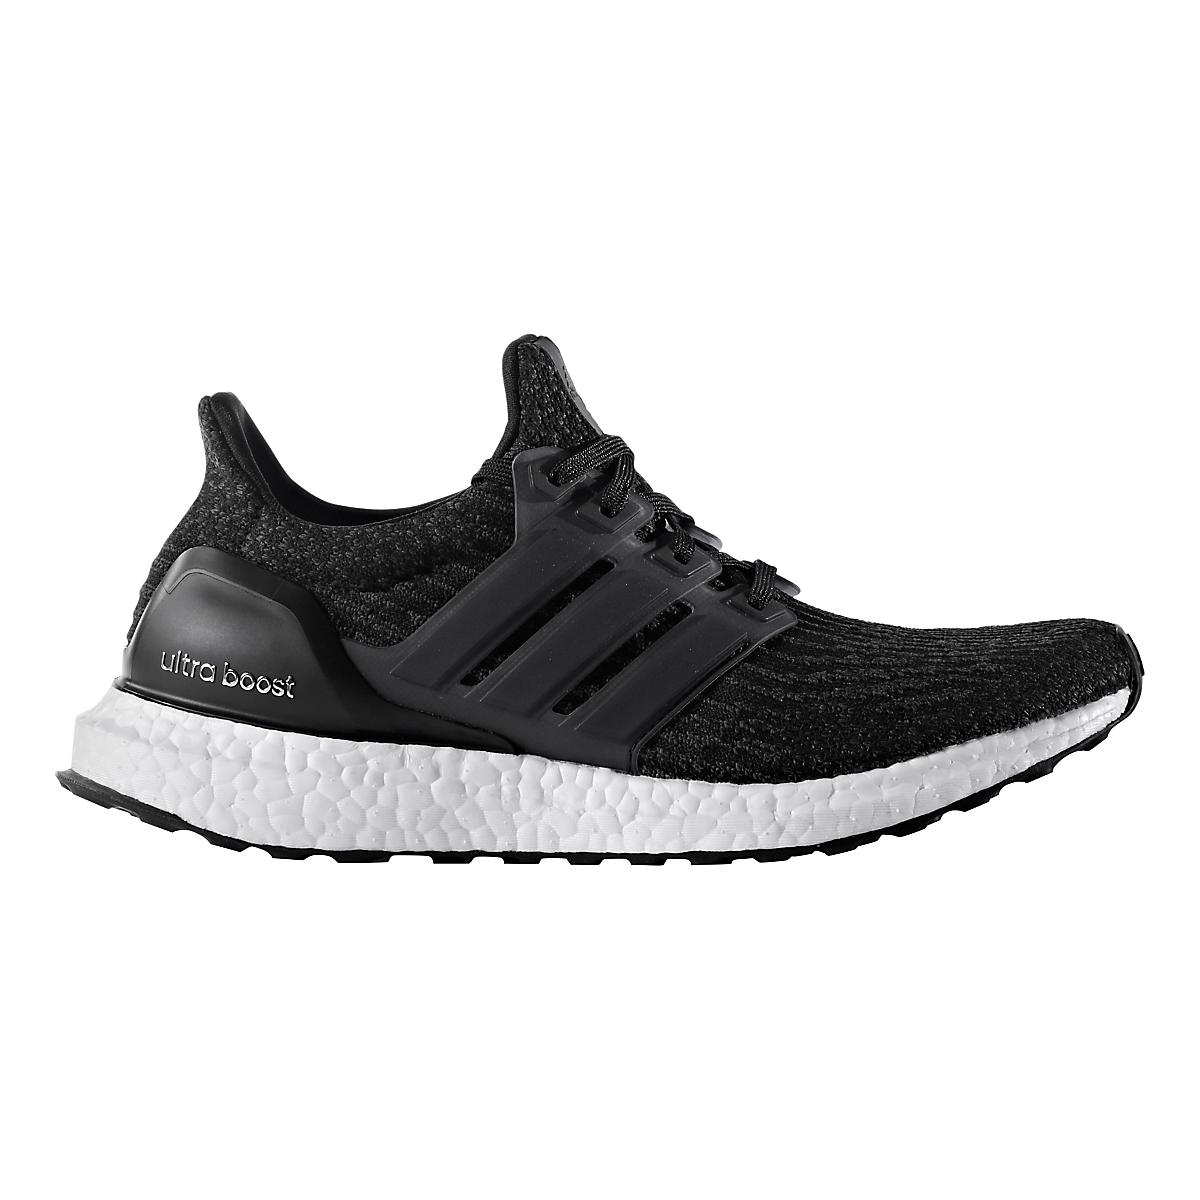 womens adidas ultra boost running shoe at road runner sports. Black Bedroom Furniture Sets. Home Design Ideas